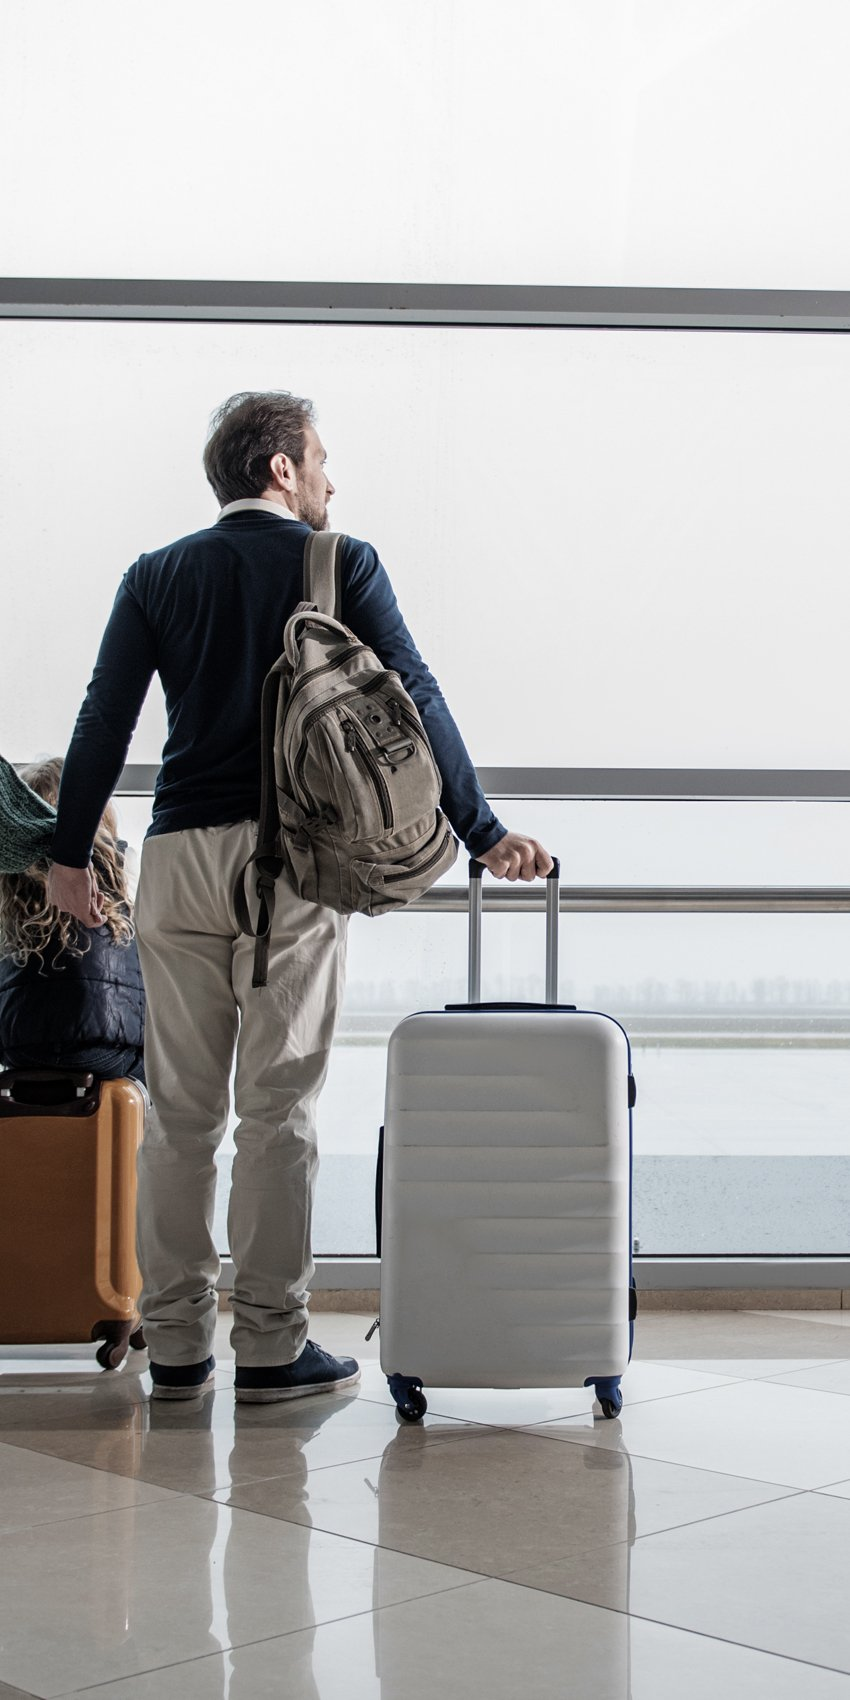 couple at airport with luggage looking out window